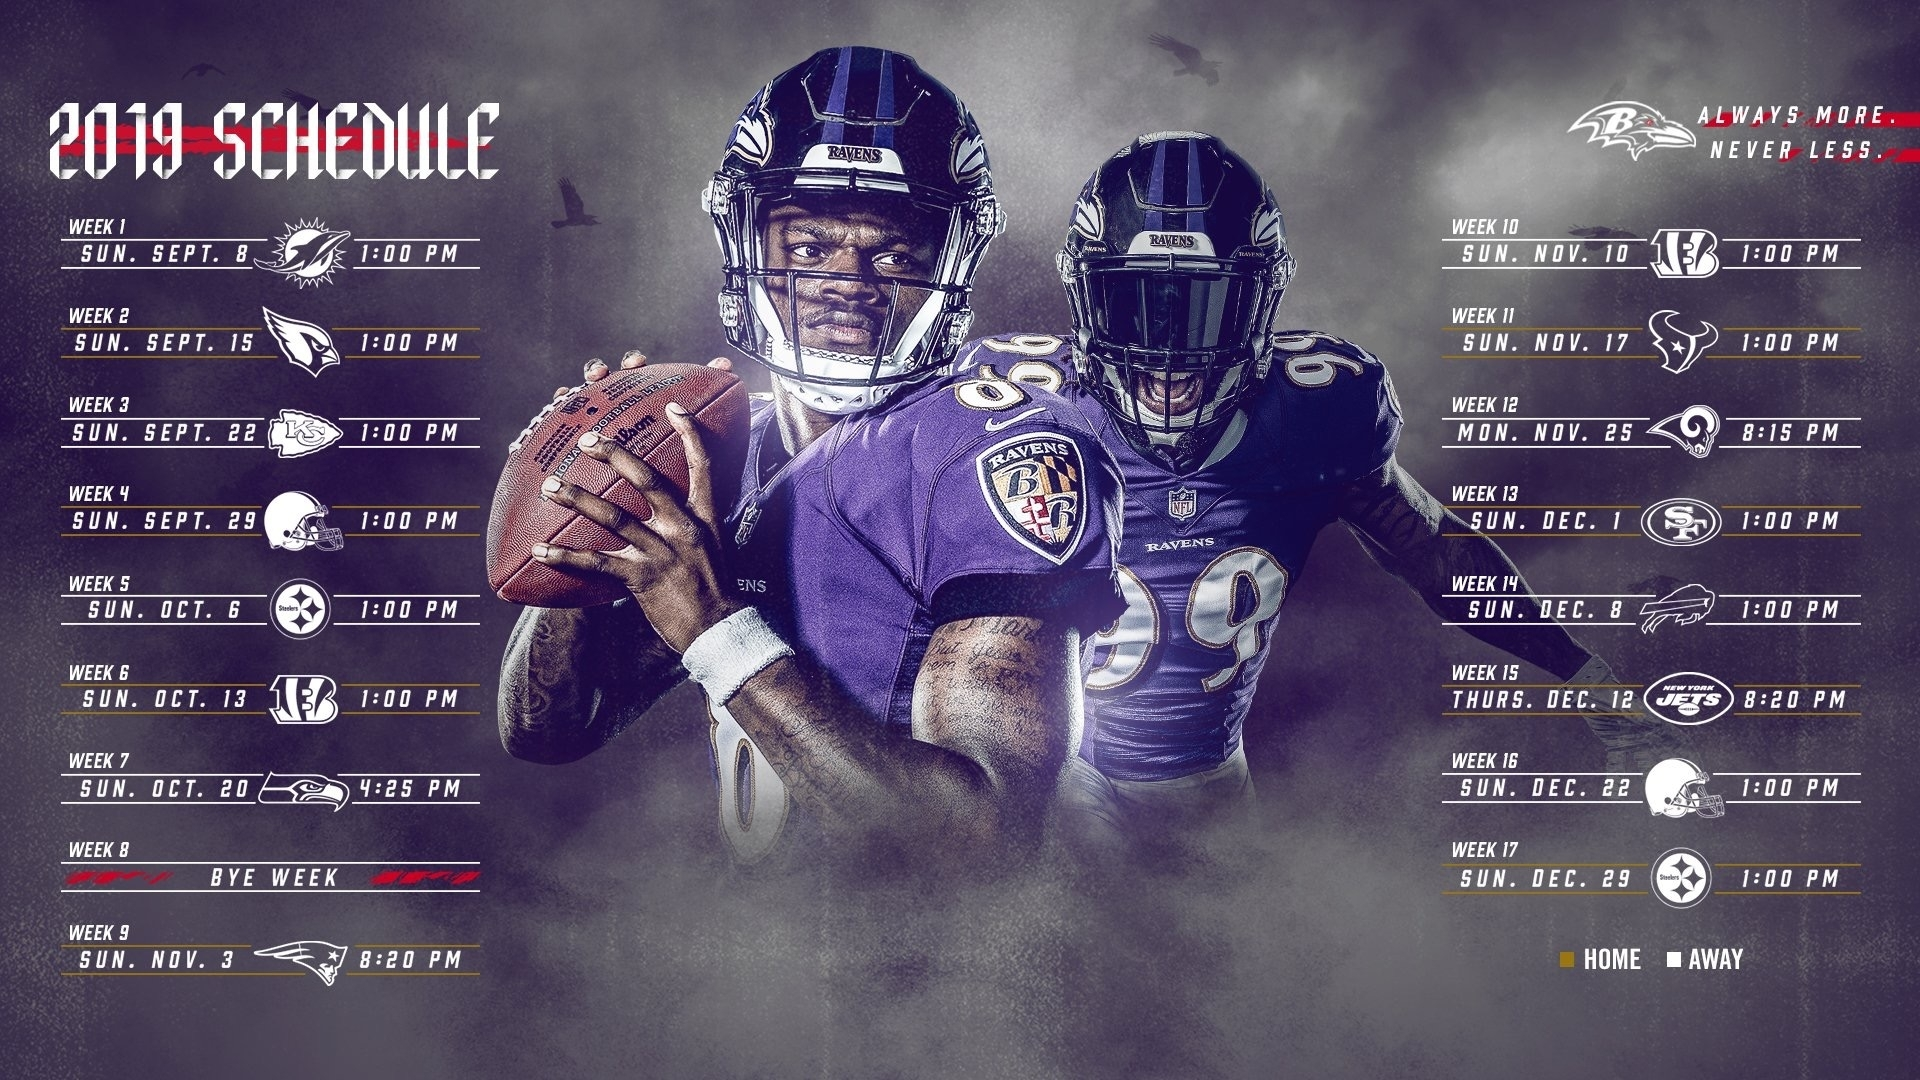 2019-2020 Baltimore Ravens Nfl Regular Season Schedule with regard to Nfl 2019-2020 Remaining Printble Schedule